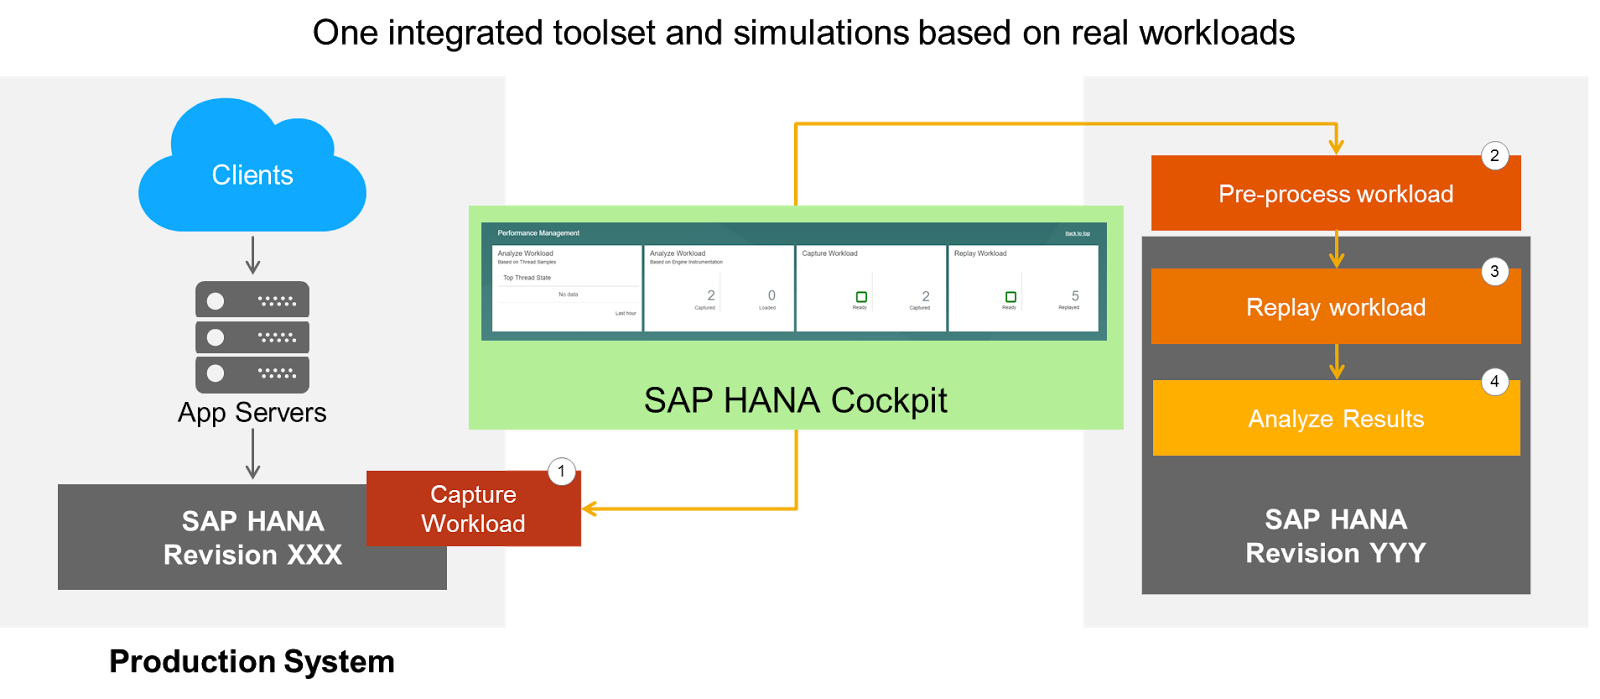 Sap hana tutorial material and certification guide sap hana tutorials and materials sap hana sap hana certifications sap hana guide baditri Image collections